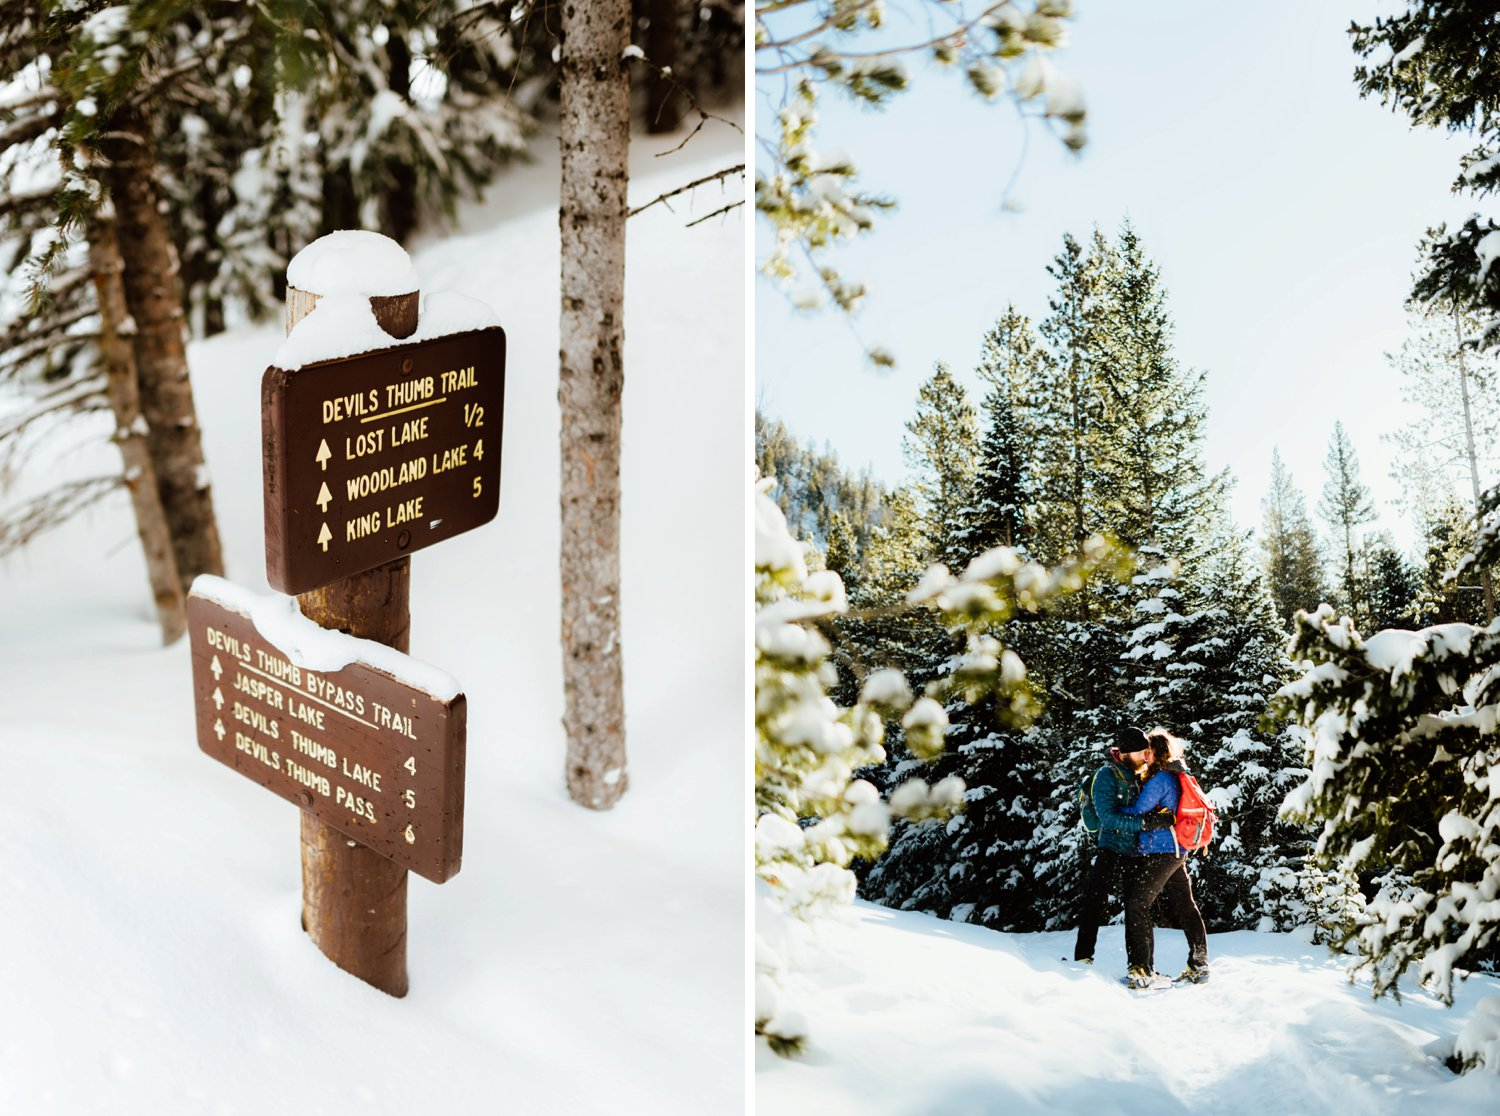 Pure romance happening here at this breathtaking winter, mountain engagement photoshoot. Indian Peaks Wilderness area has the most amazing trails to snowshoe like Lost Lake and Devil's Thumb Pass... I want to have my engagement session here!| Lost Lake engagement photos by adventurous Colorado wedding photographer, Maddie Mae.